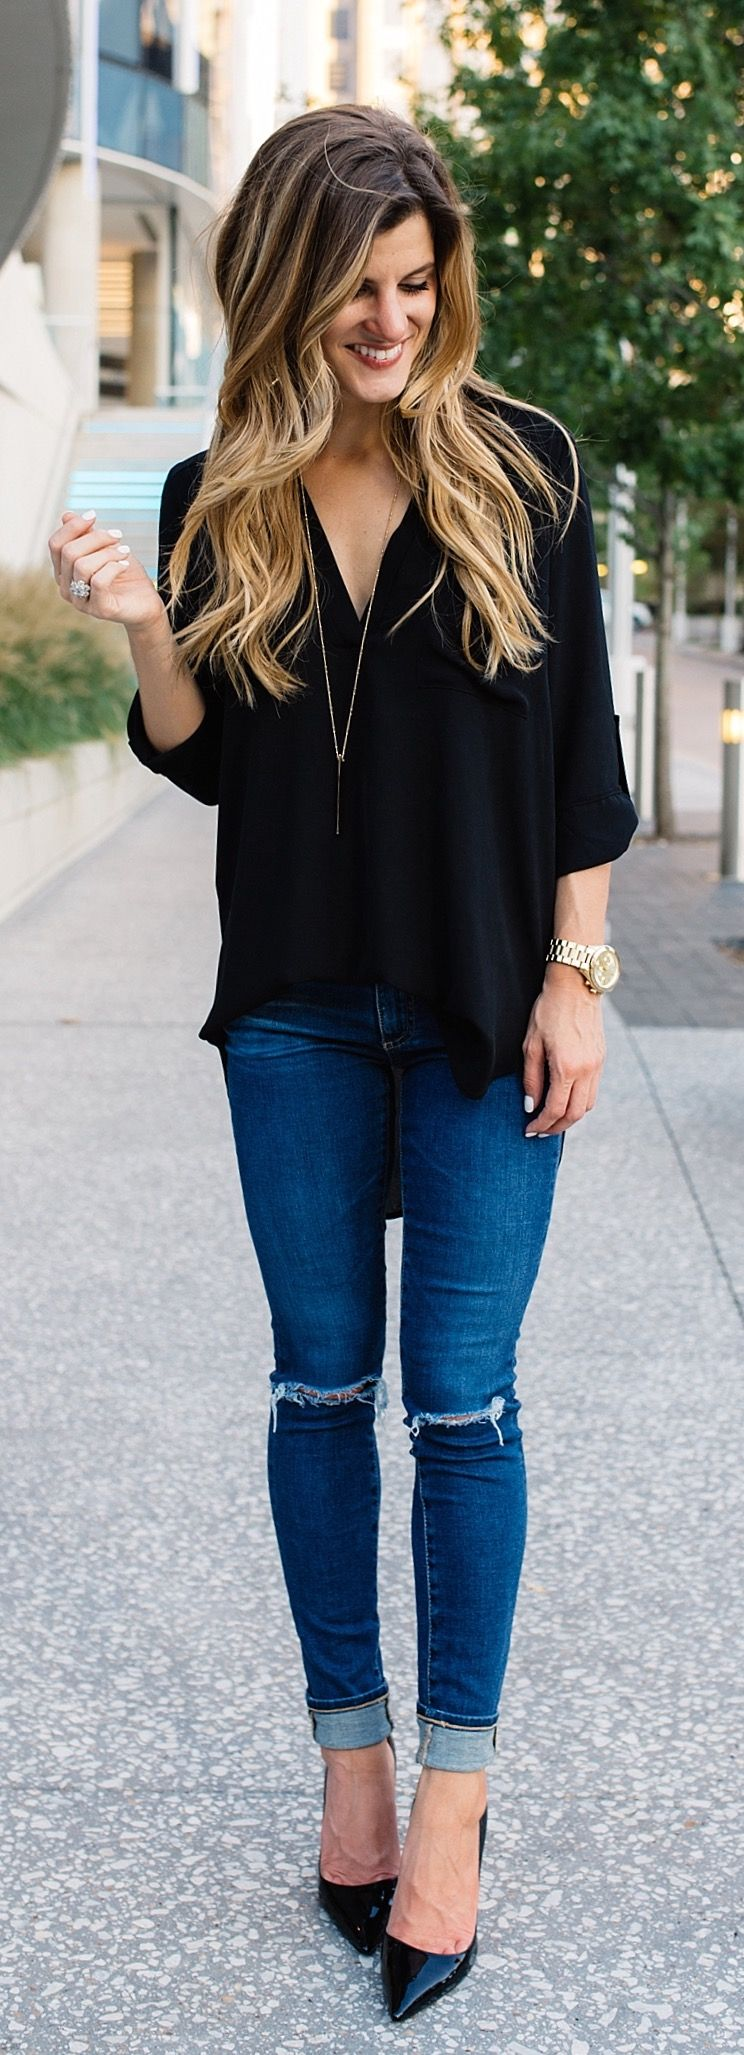 3 Reasons to Love It u0026 3 Ways To Wear It | Fall transition outfits Tunics and Black